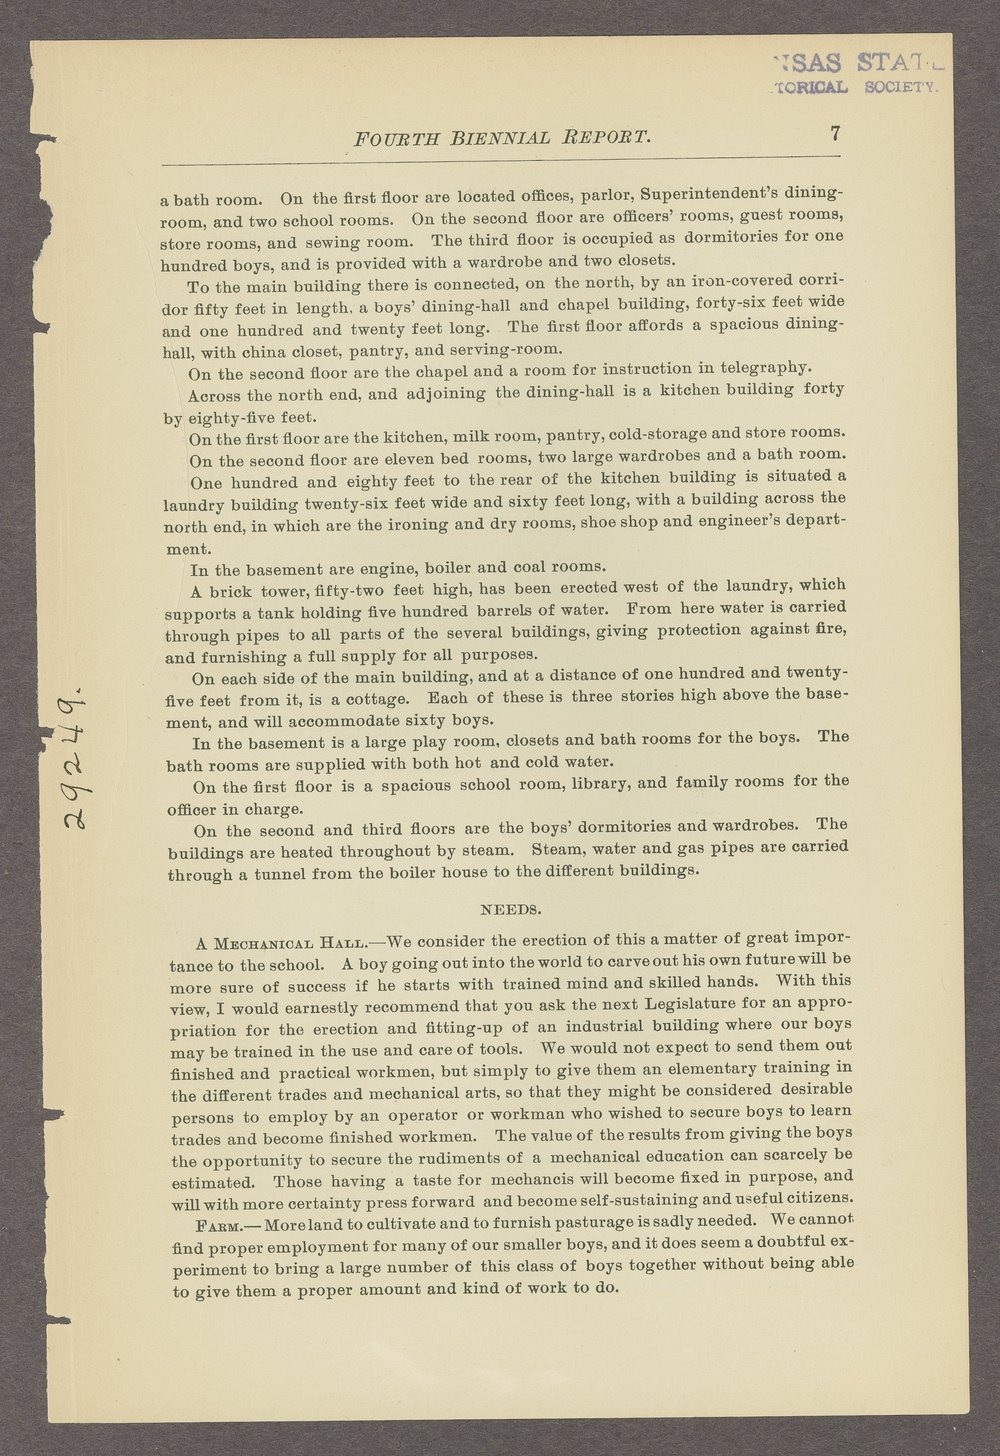 Biennial report of the State Reform School, 1888 - 7